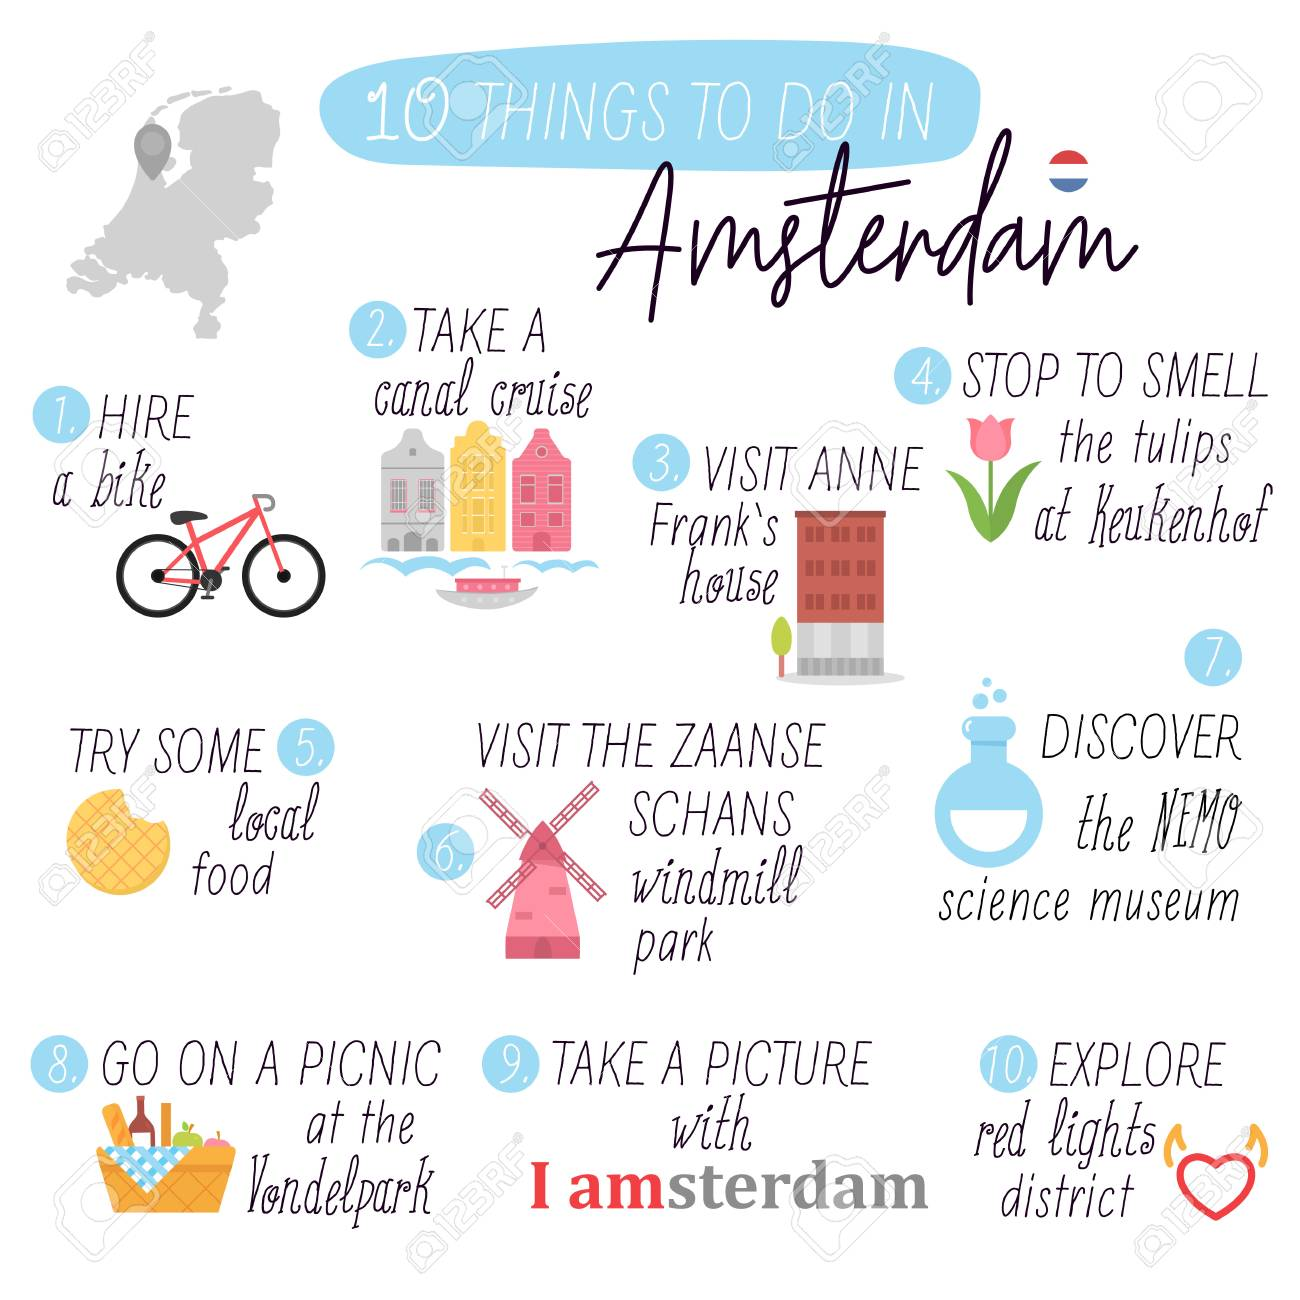 amsterdam travel guide to do list things to do in amsterdam